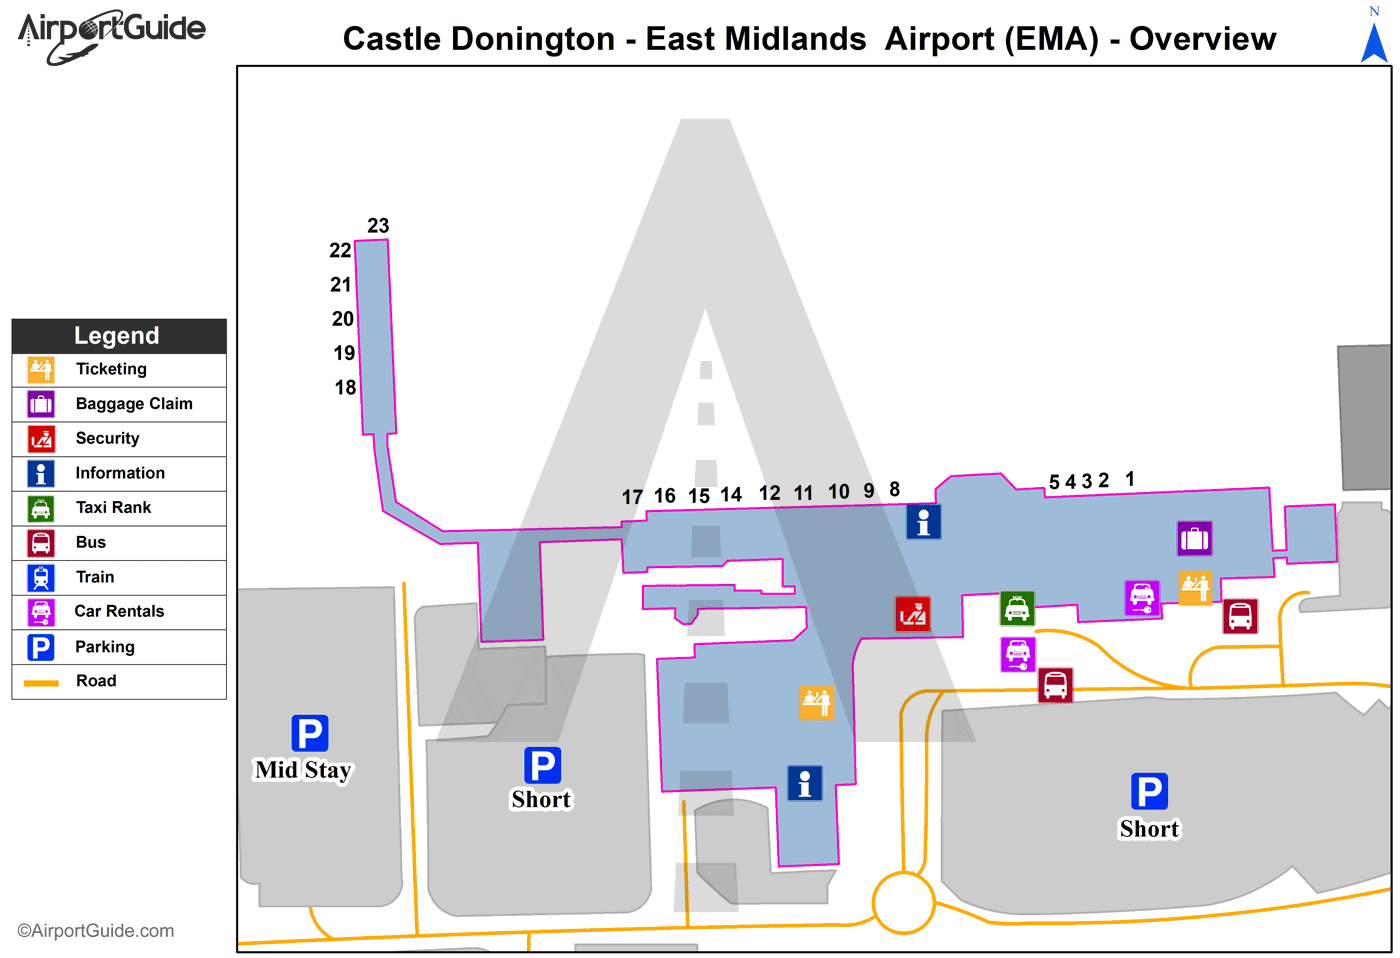 Castle Donington - London City (EMA) Airport Terminal Map - Overview